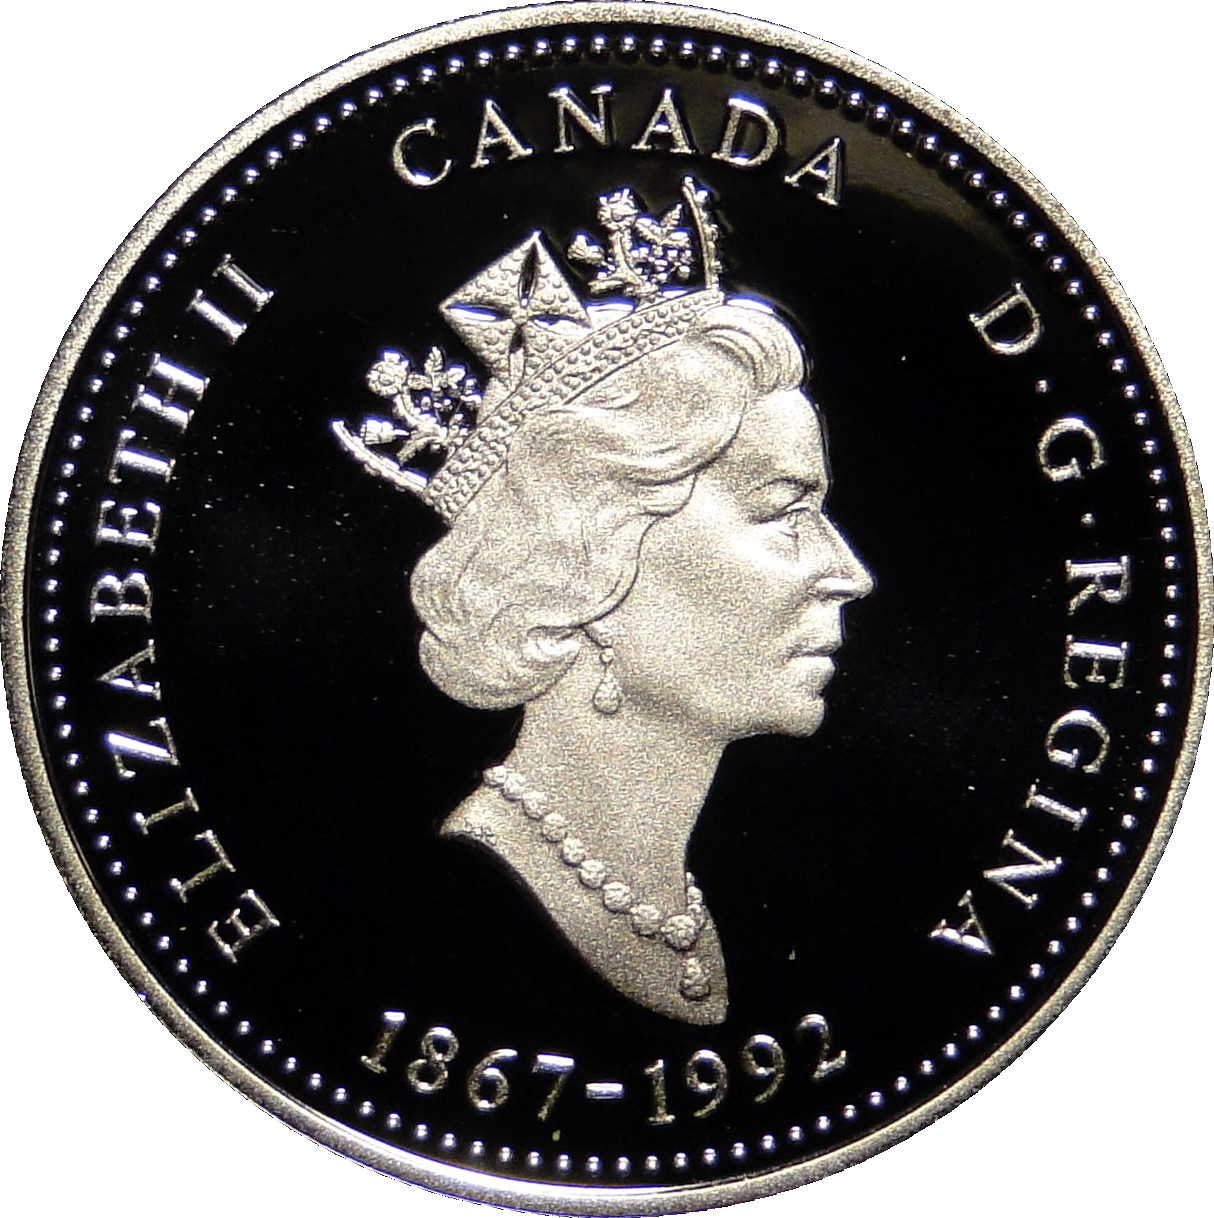 2012 Canada Silver Proof 25 Cents